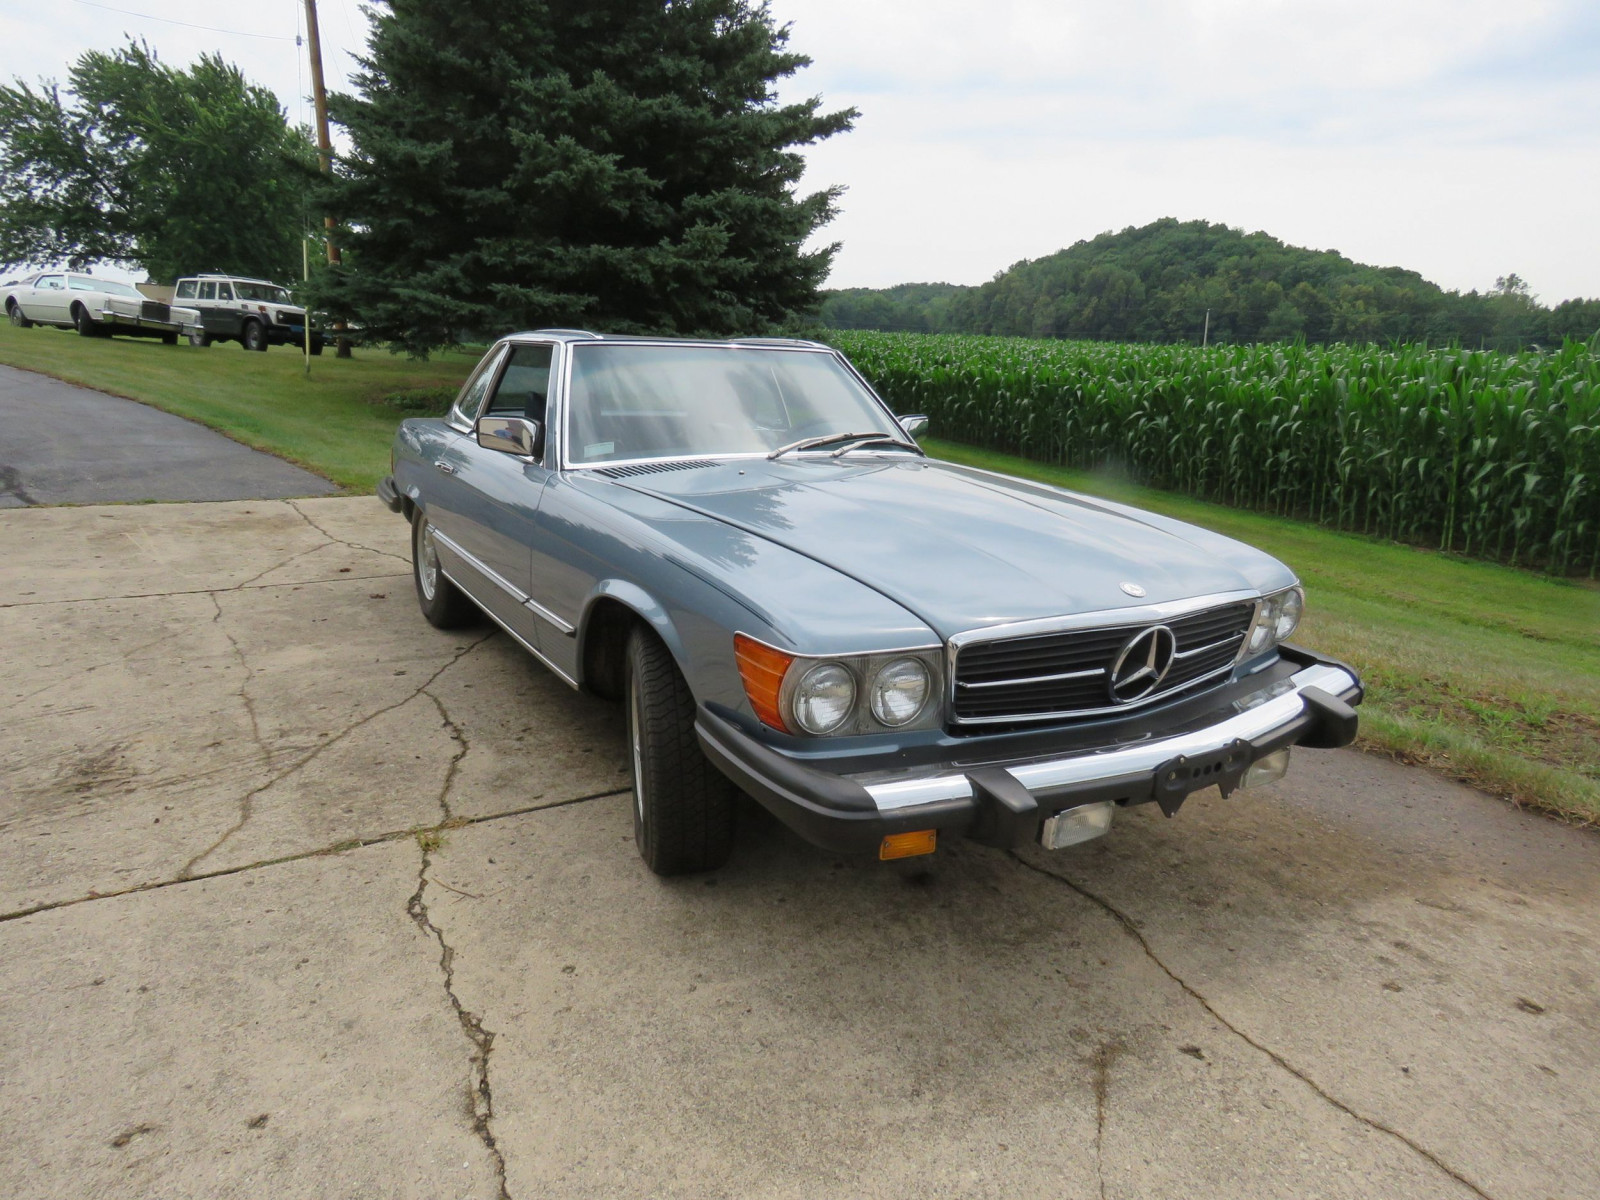 1979 Mercedes 450SL Coupe - Image 1